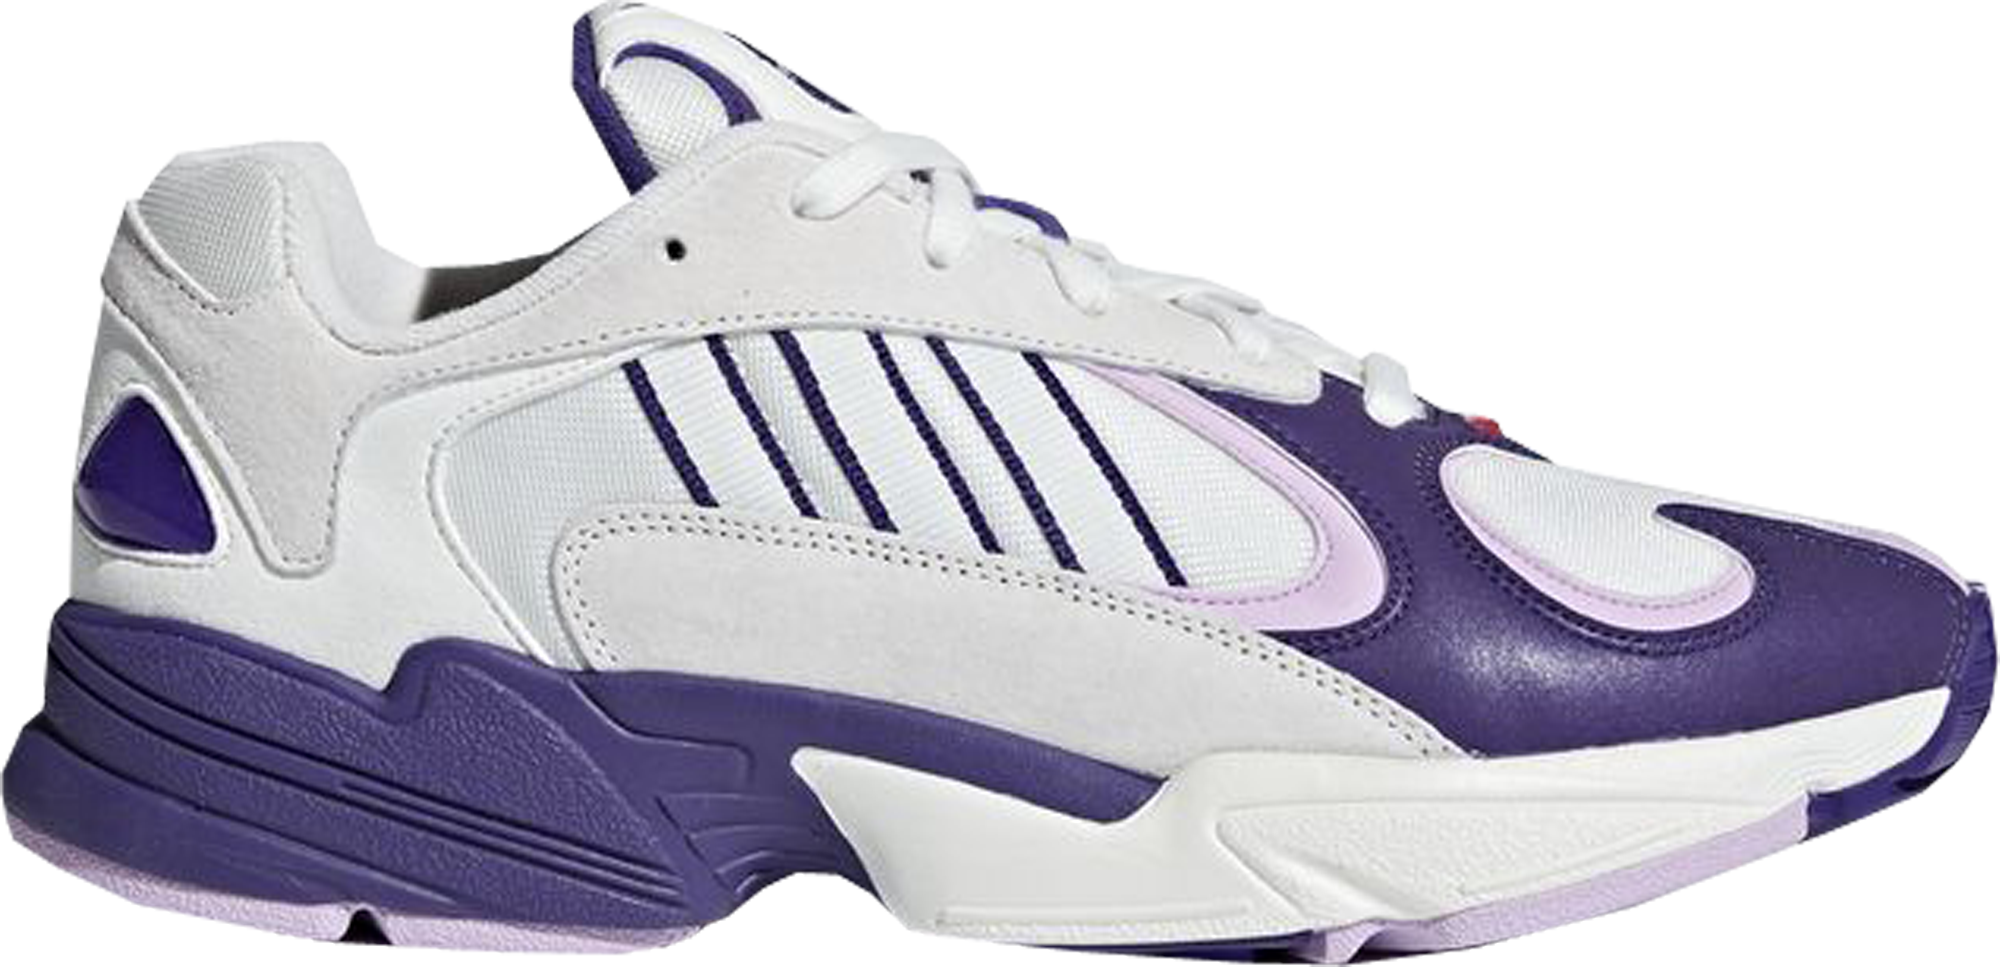 adidas Yung-1 Dragon Ball Z Frieza